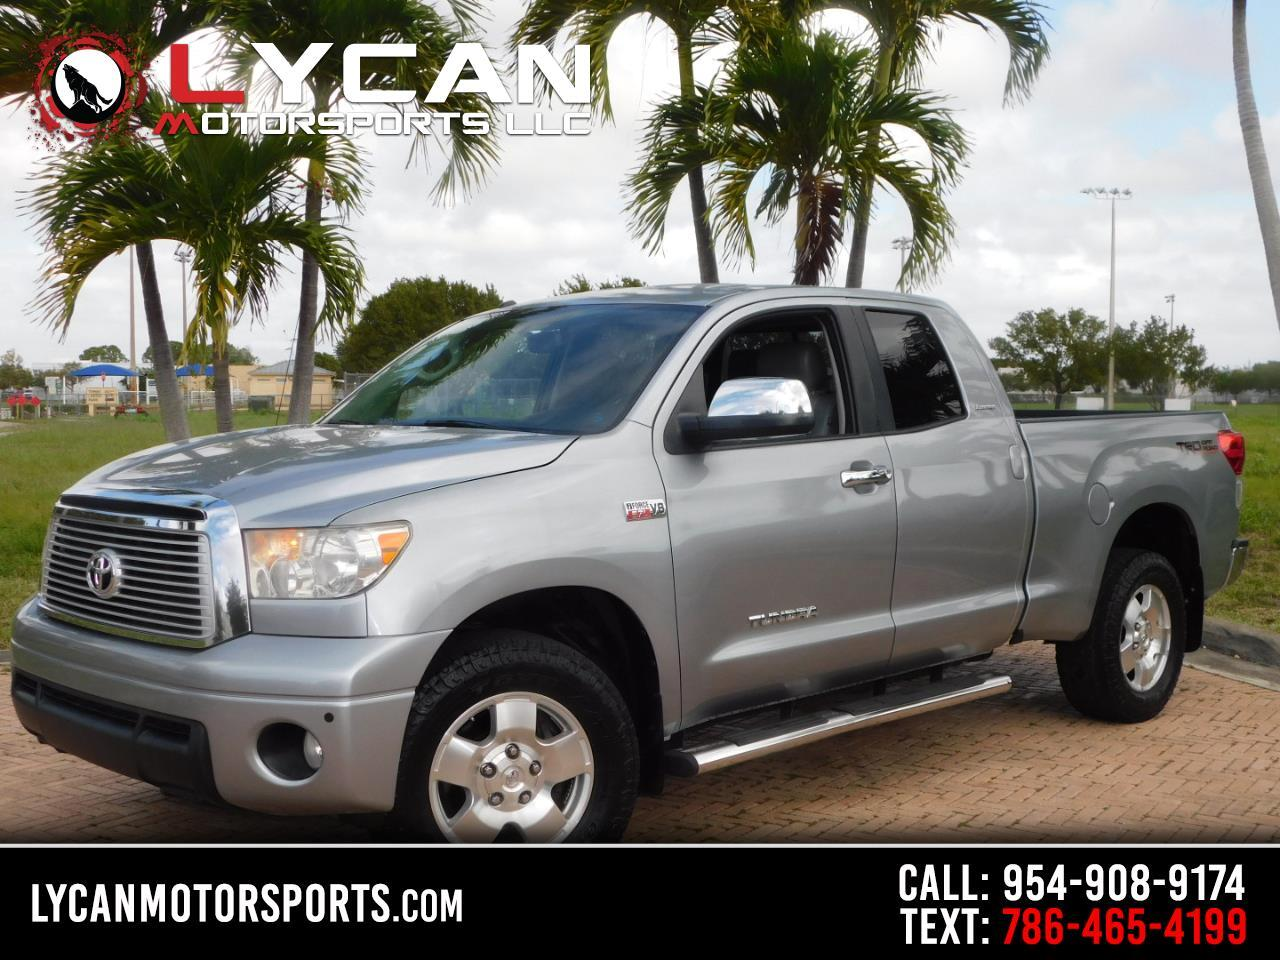 Toyota Tundra Limited 5.7L FFV Double Cab 4WD 2012